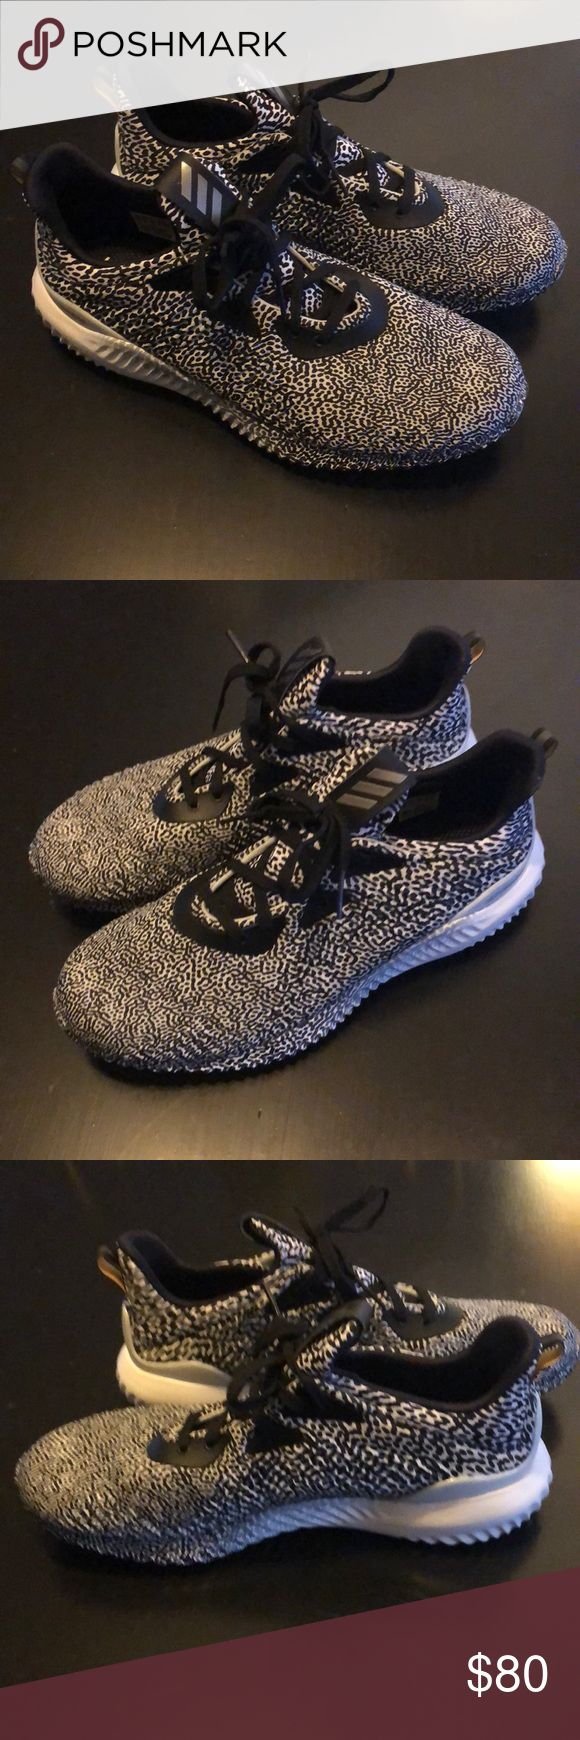 Adidas Alpha Bounce Perfect condition Adidas Alpha Bounces. Only worn a couple of times! Insoles and outside of shoes are still in like new condition. Only have some discoloring on bottom soles. Size 10. adidas Shoes Athletic Shoes